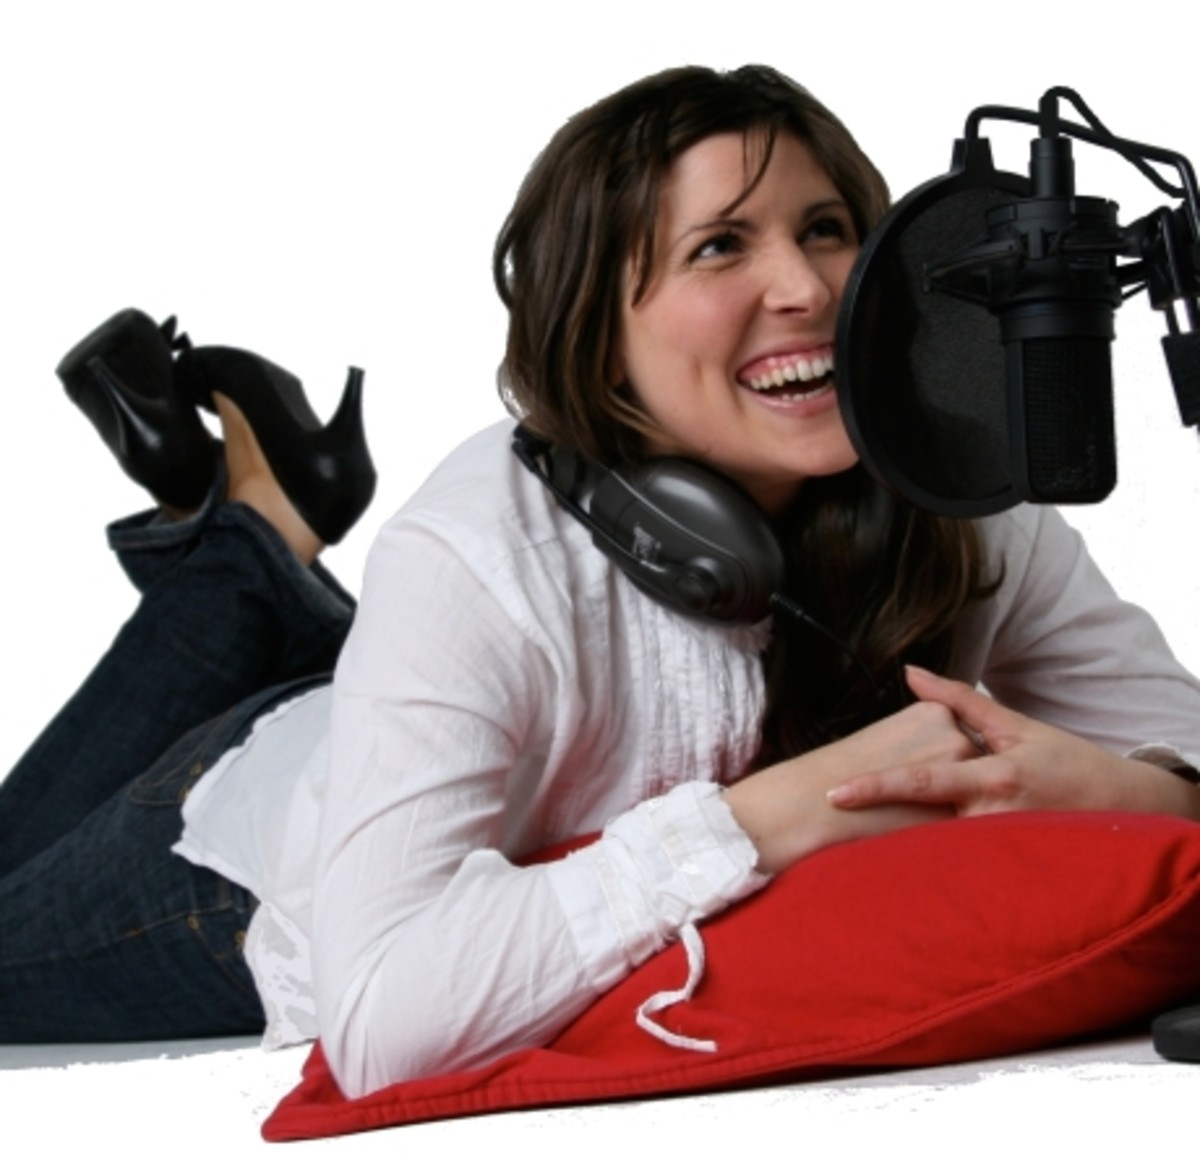 Voice Over work is easy and can earn you lots of extra money.